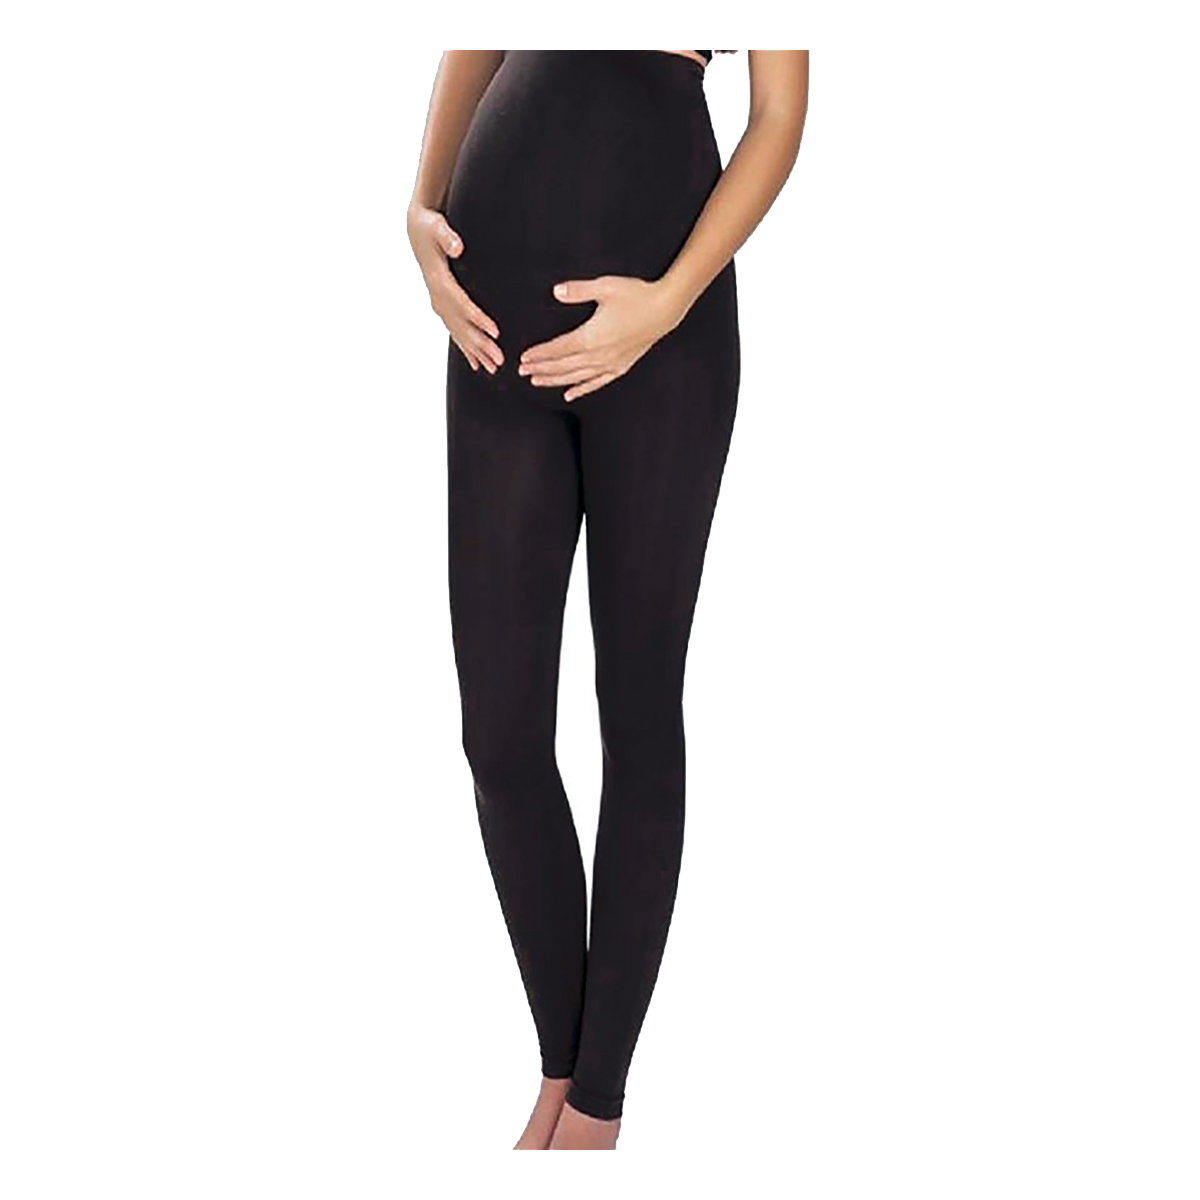 2667da8d045e8 11 Top-Rated Black Leggings That Are So Comfortable, You'll Never ...